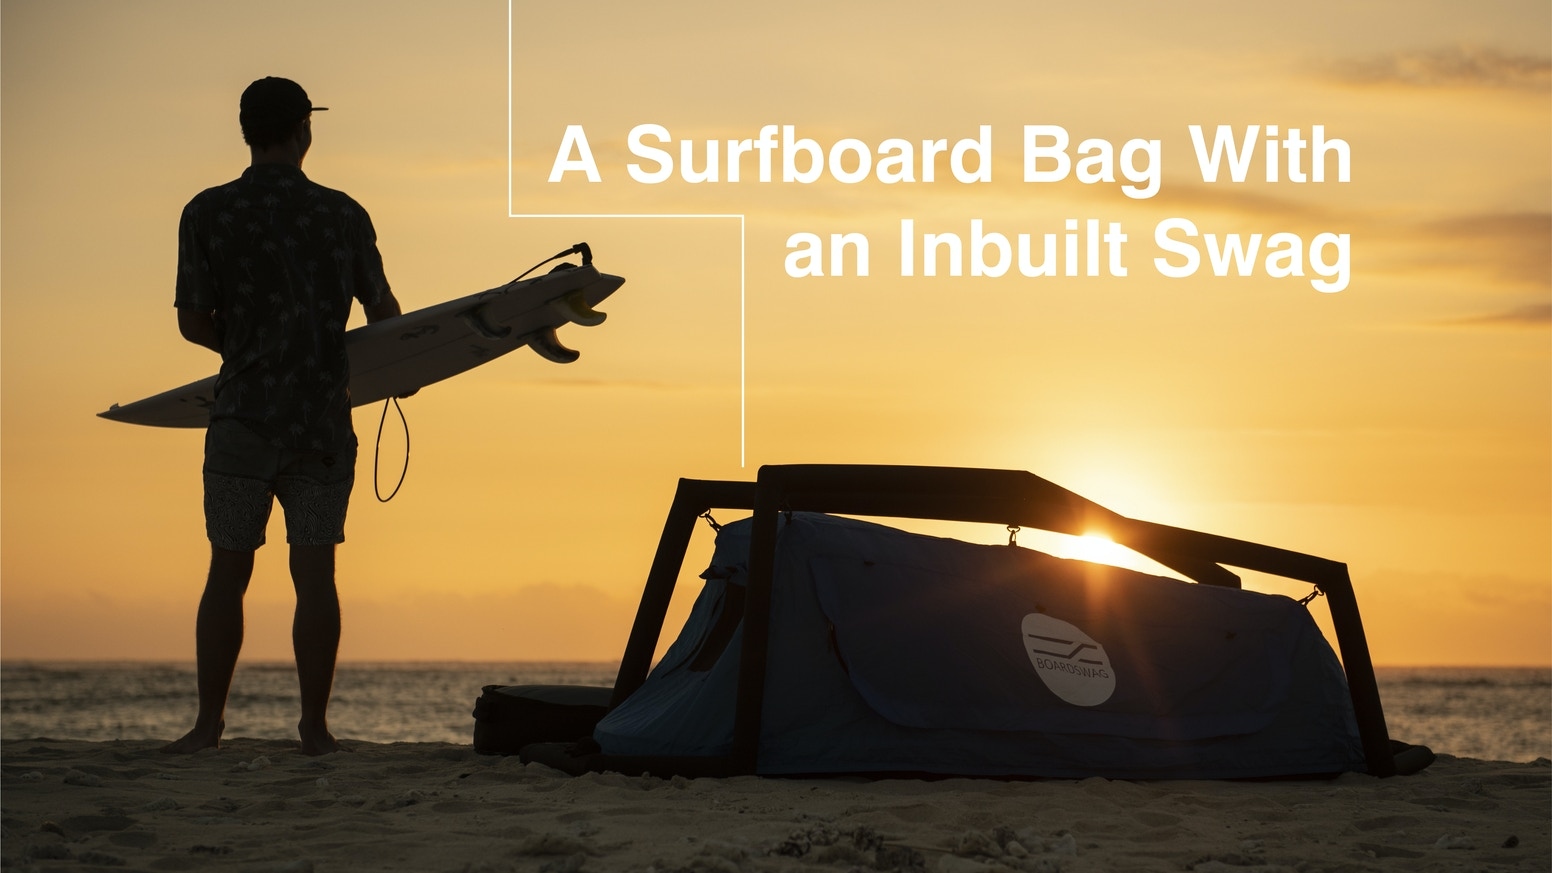 The ultimate surf travel bag, Boardswag holds 3 boards and sleeps 1 human. A premium boardbag with an inbuilt inflatable swag.